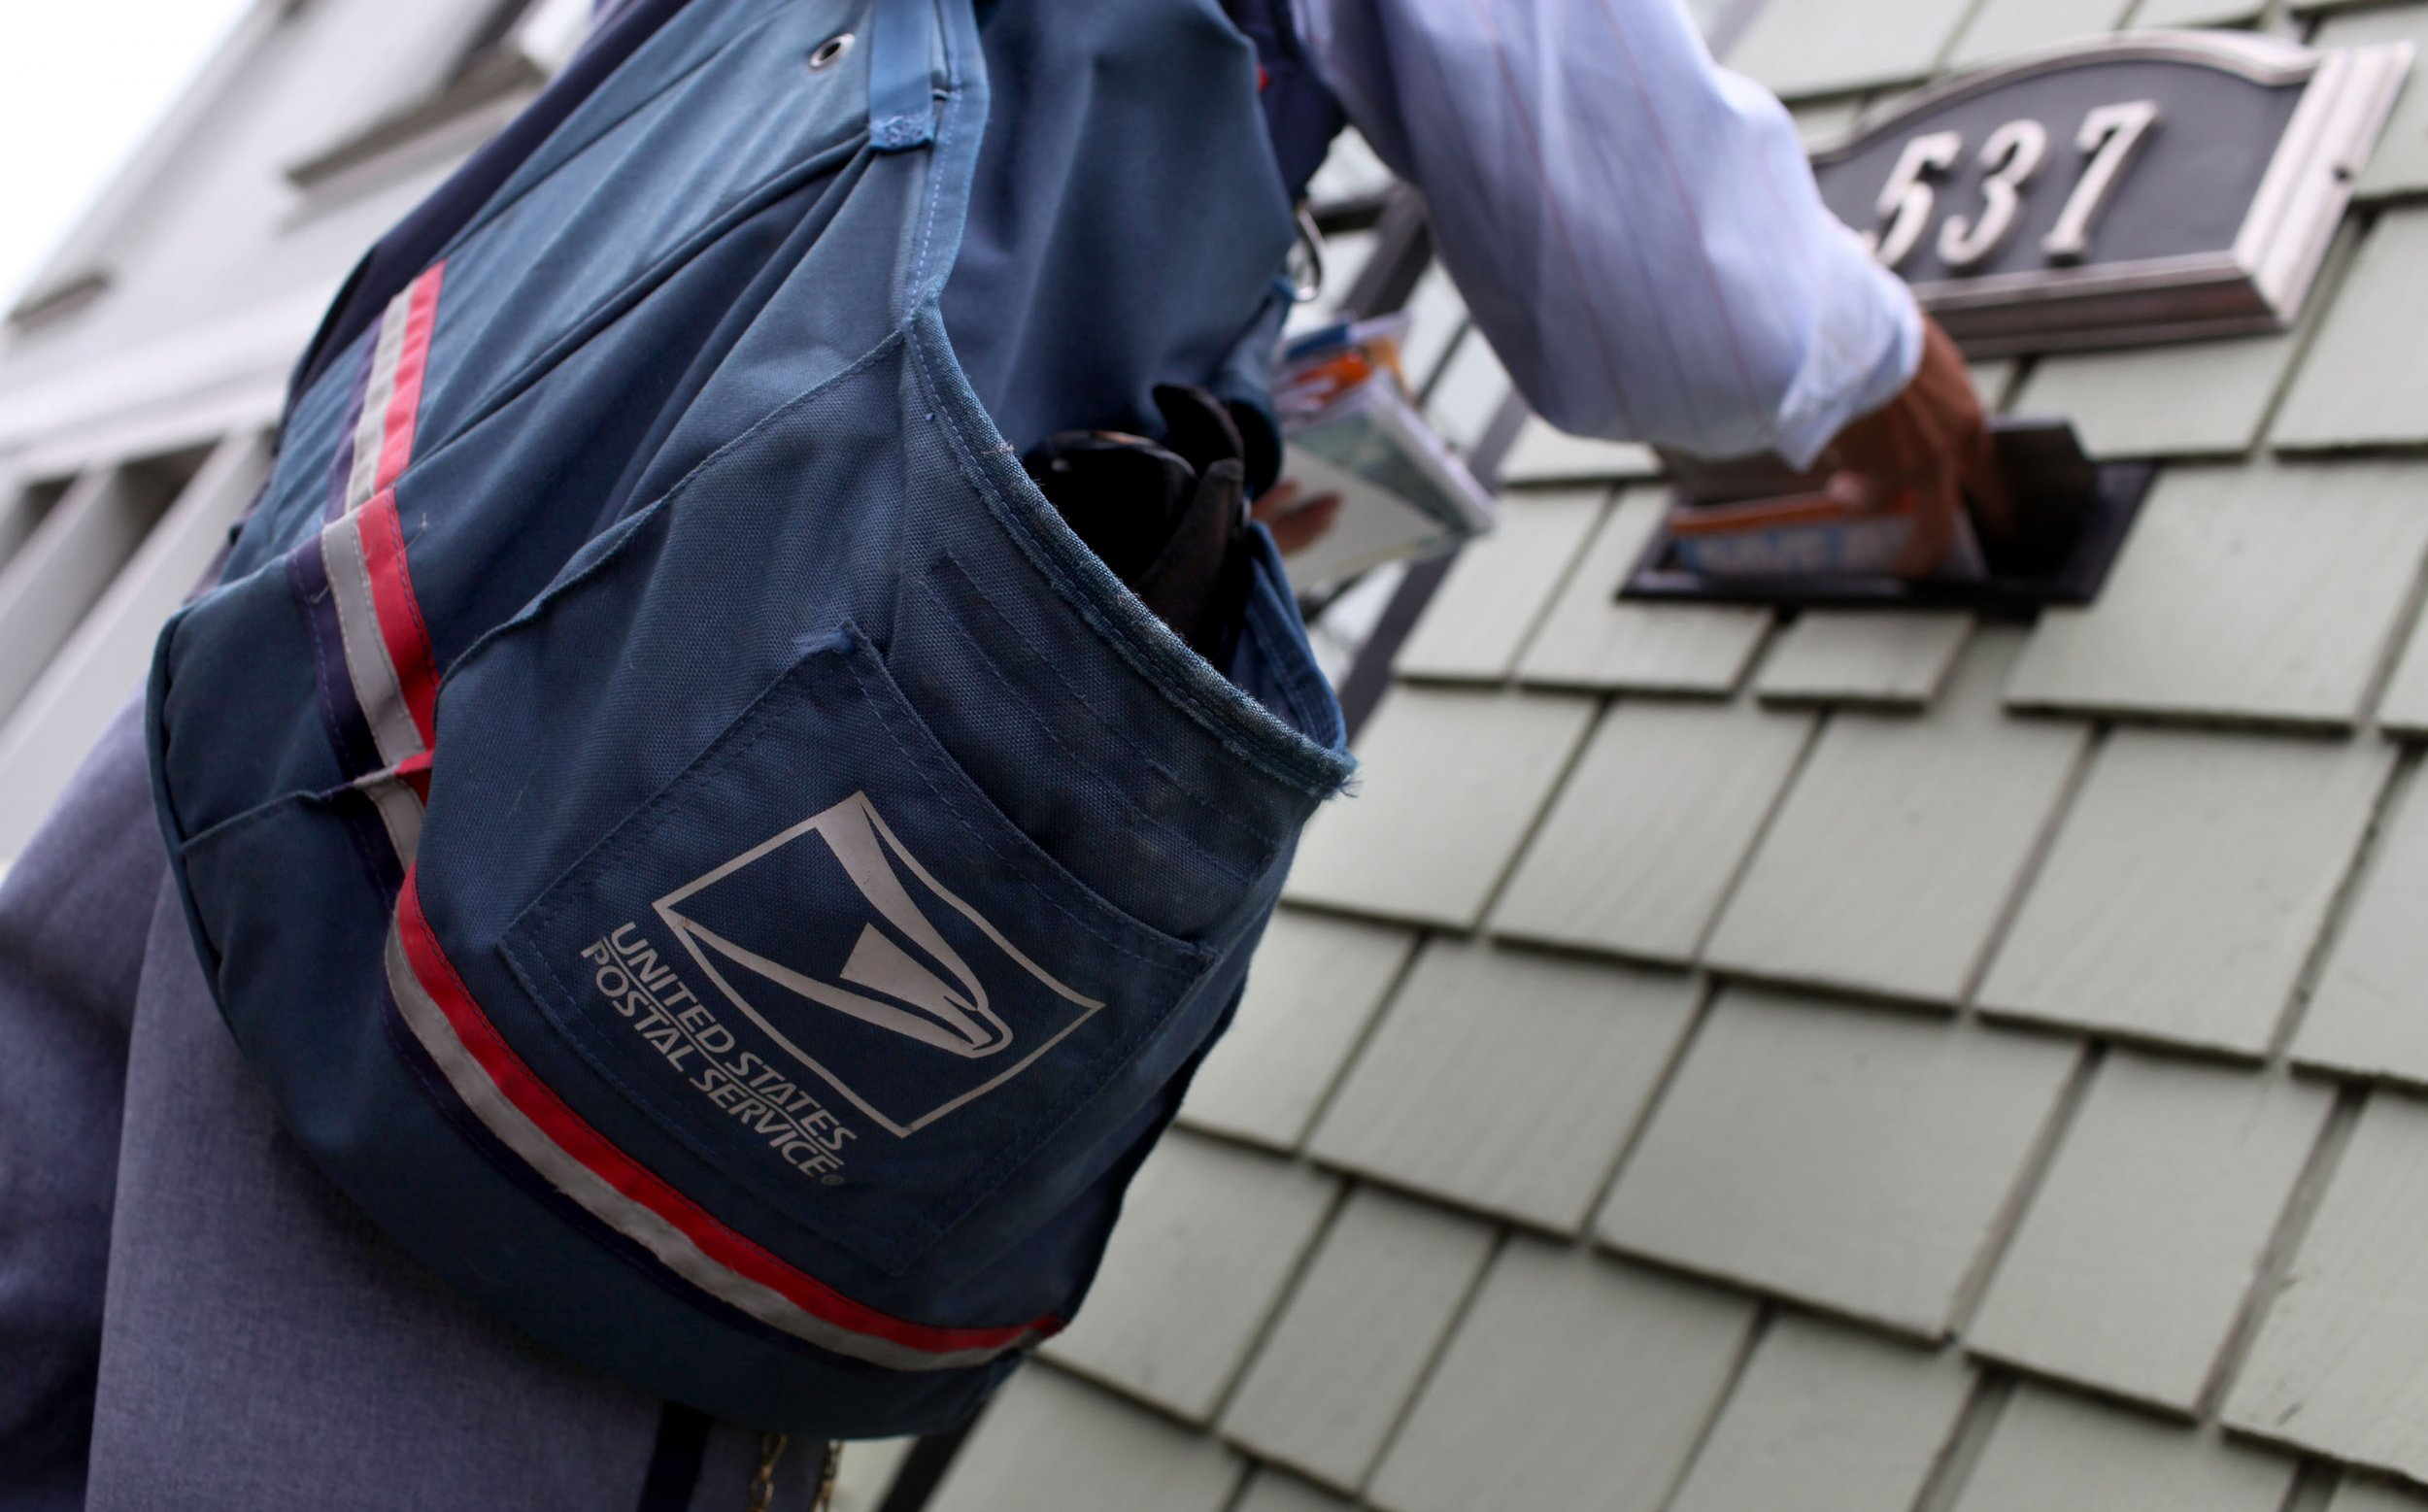 Christmas Eve Deliveries: Do USPS, UPS, FedEx Deliver on the Day Before Christmas?